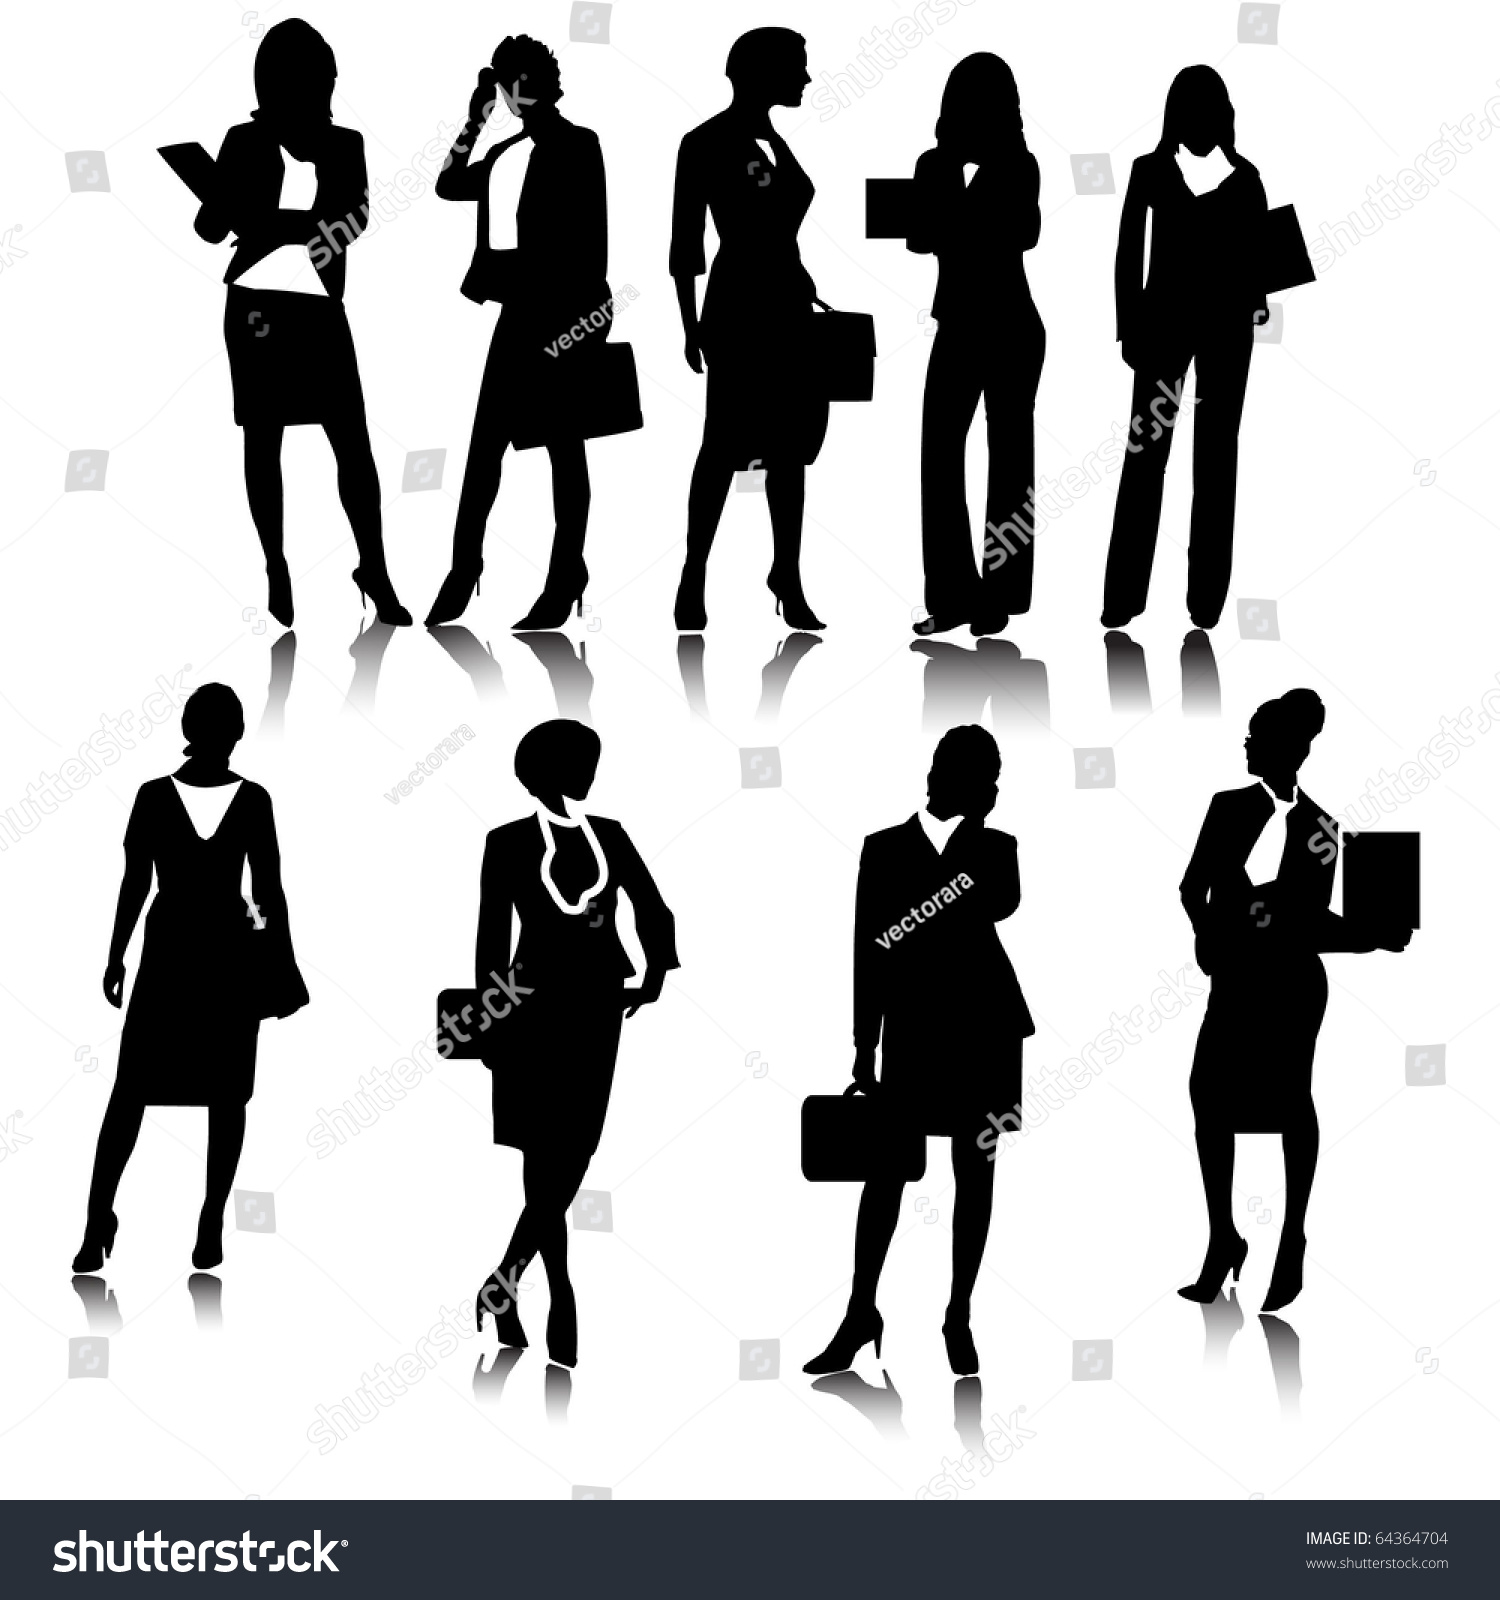 stock-vector-business-woman-silhouettes-vector-64364704.jpg